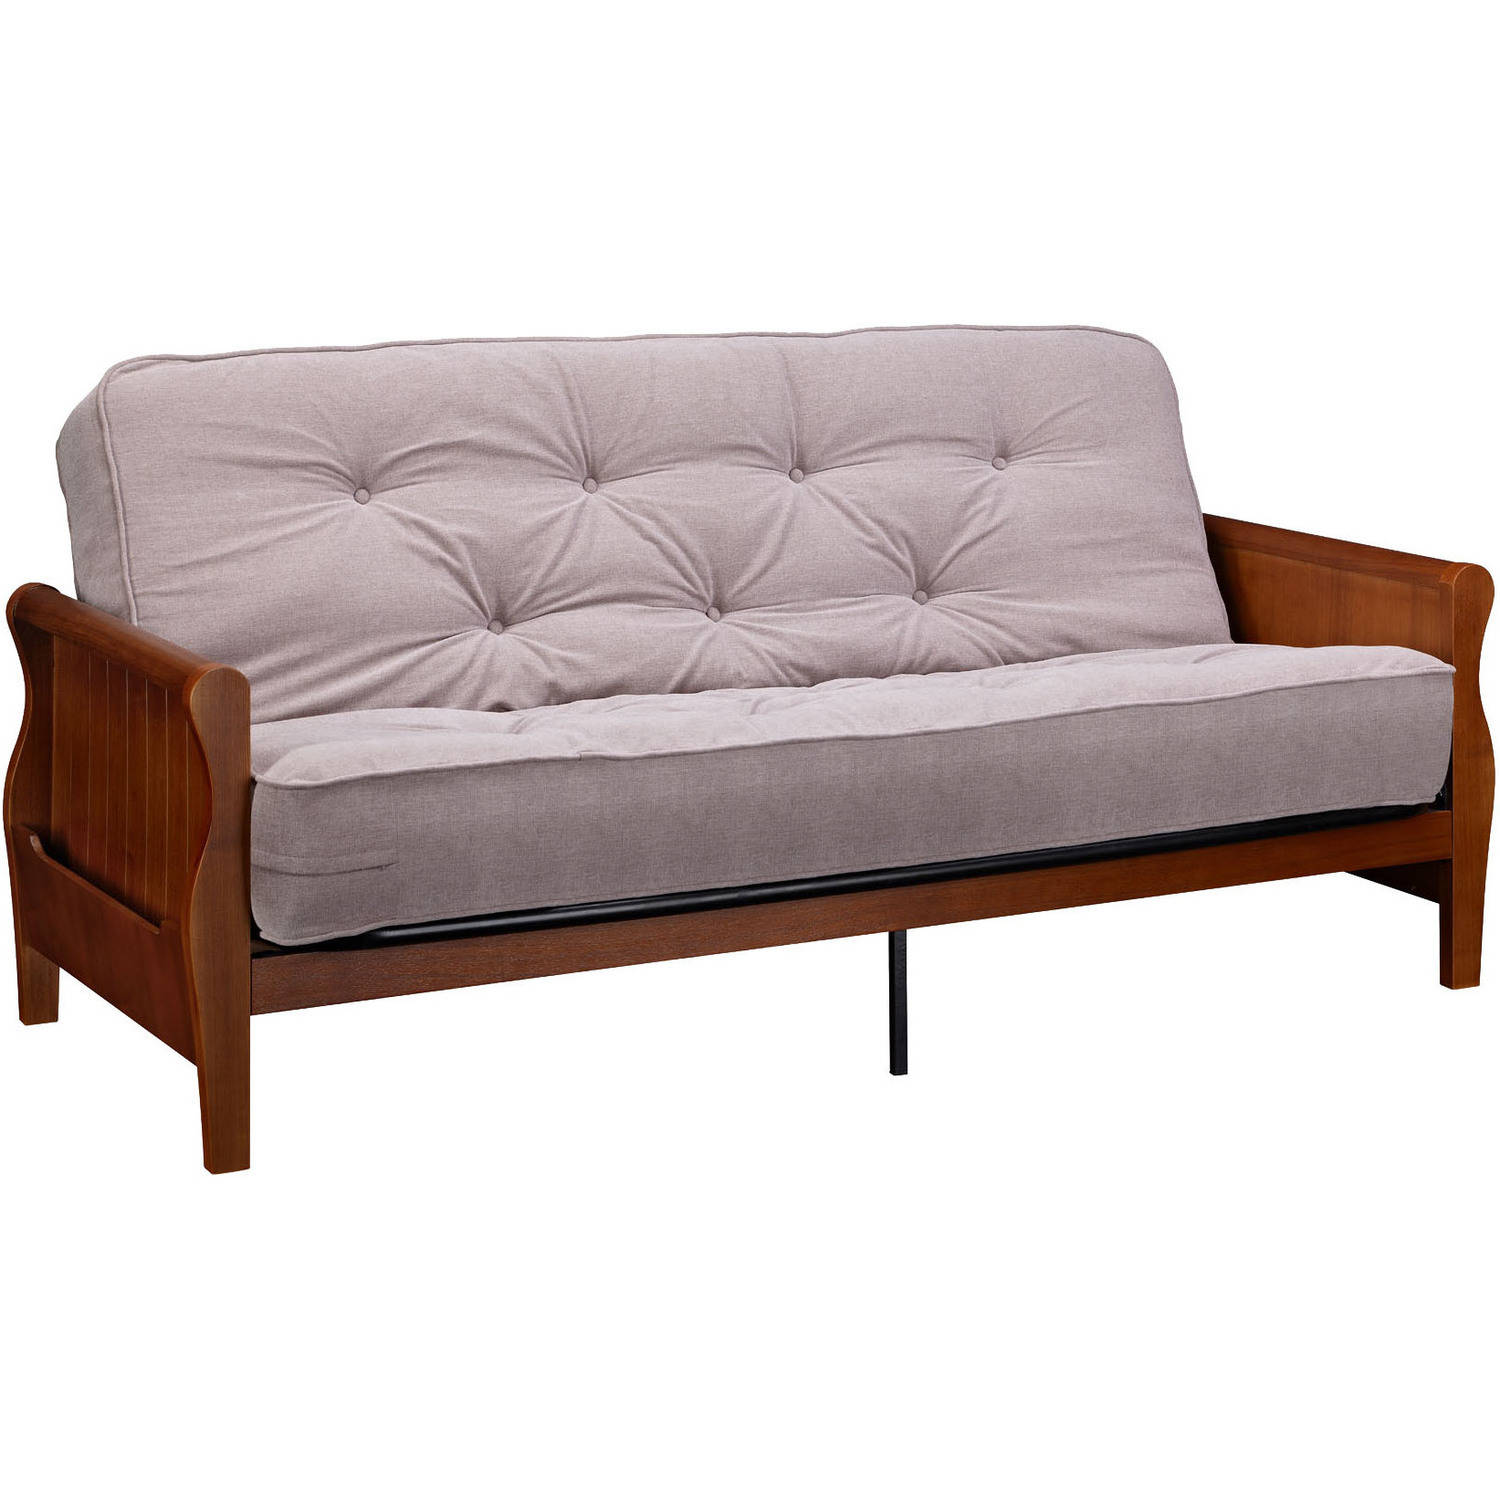 Better homes and gardens wood arm futon with 8 independently encased coil matt ebay Couch futon bed